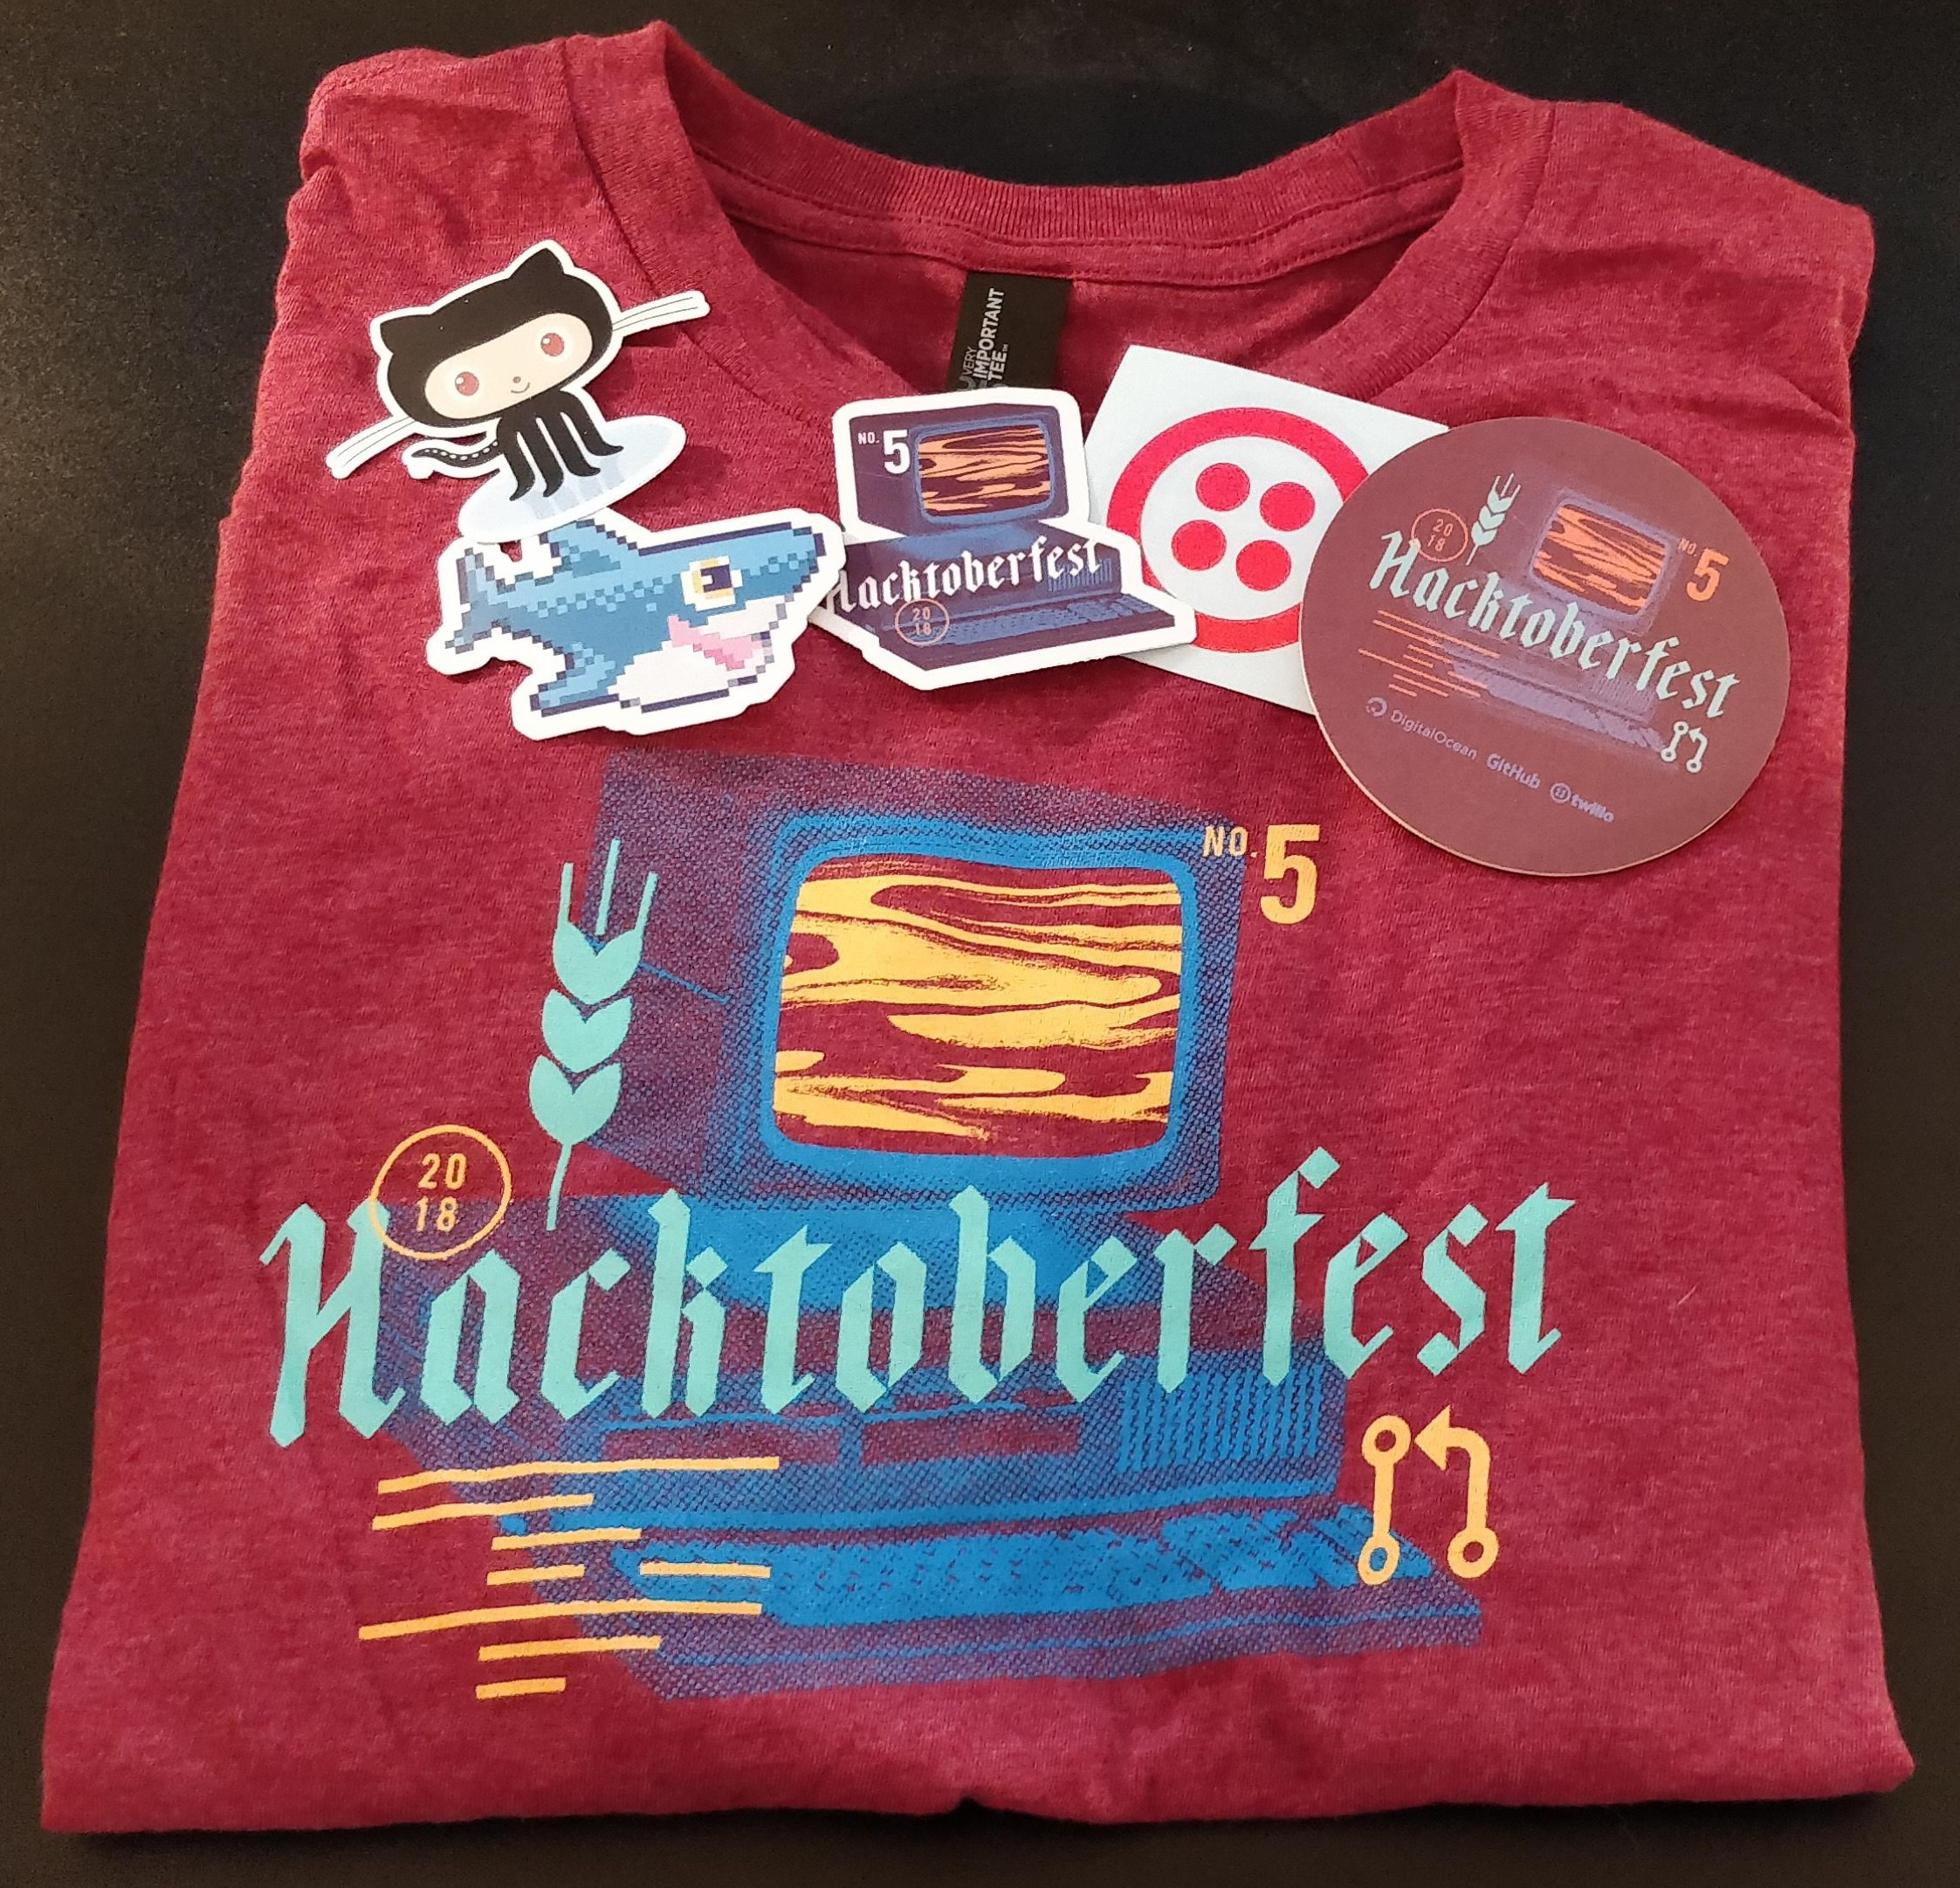 Hacktoberfest 2018 t-shirt and stickers